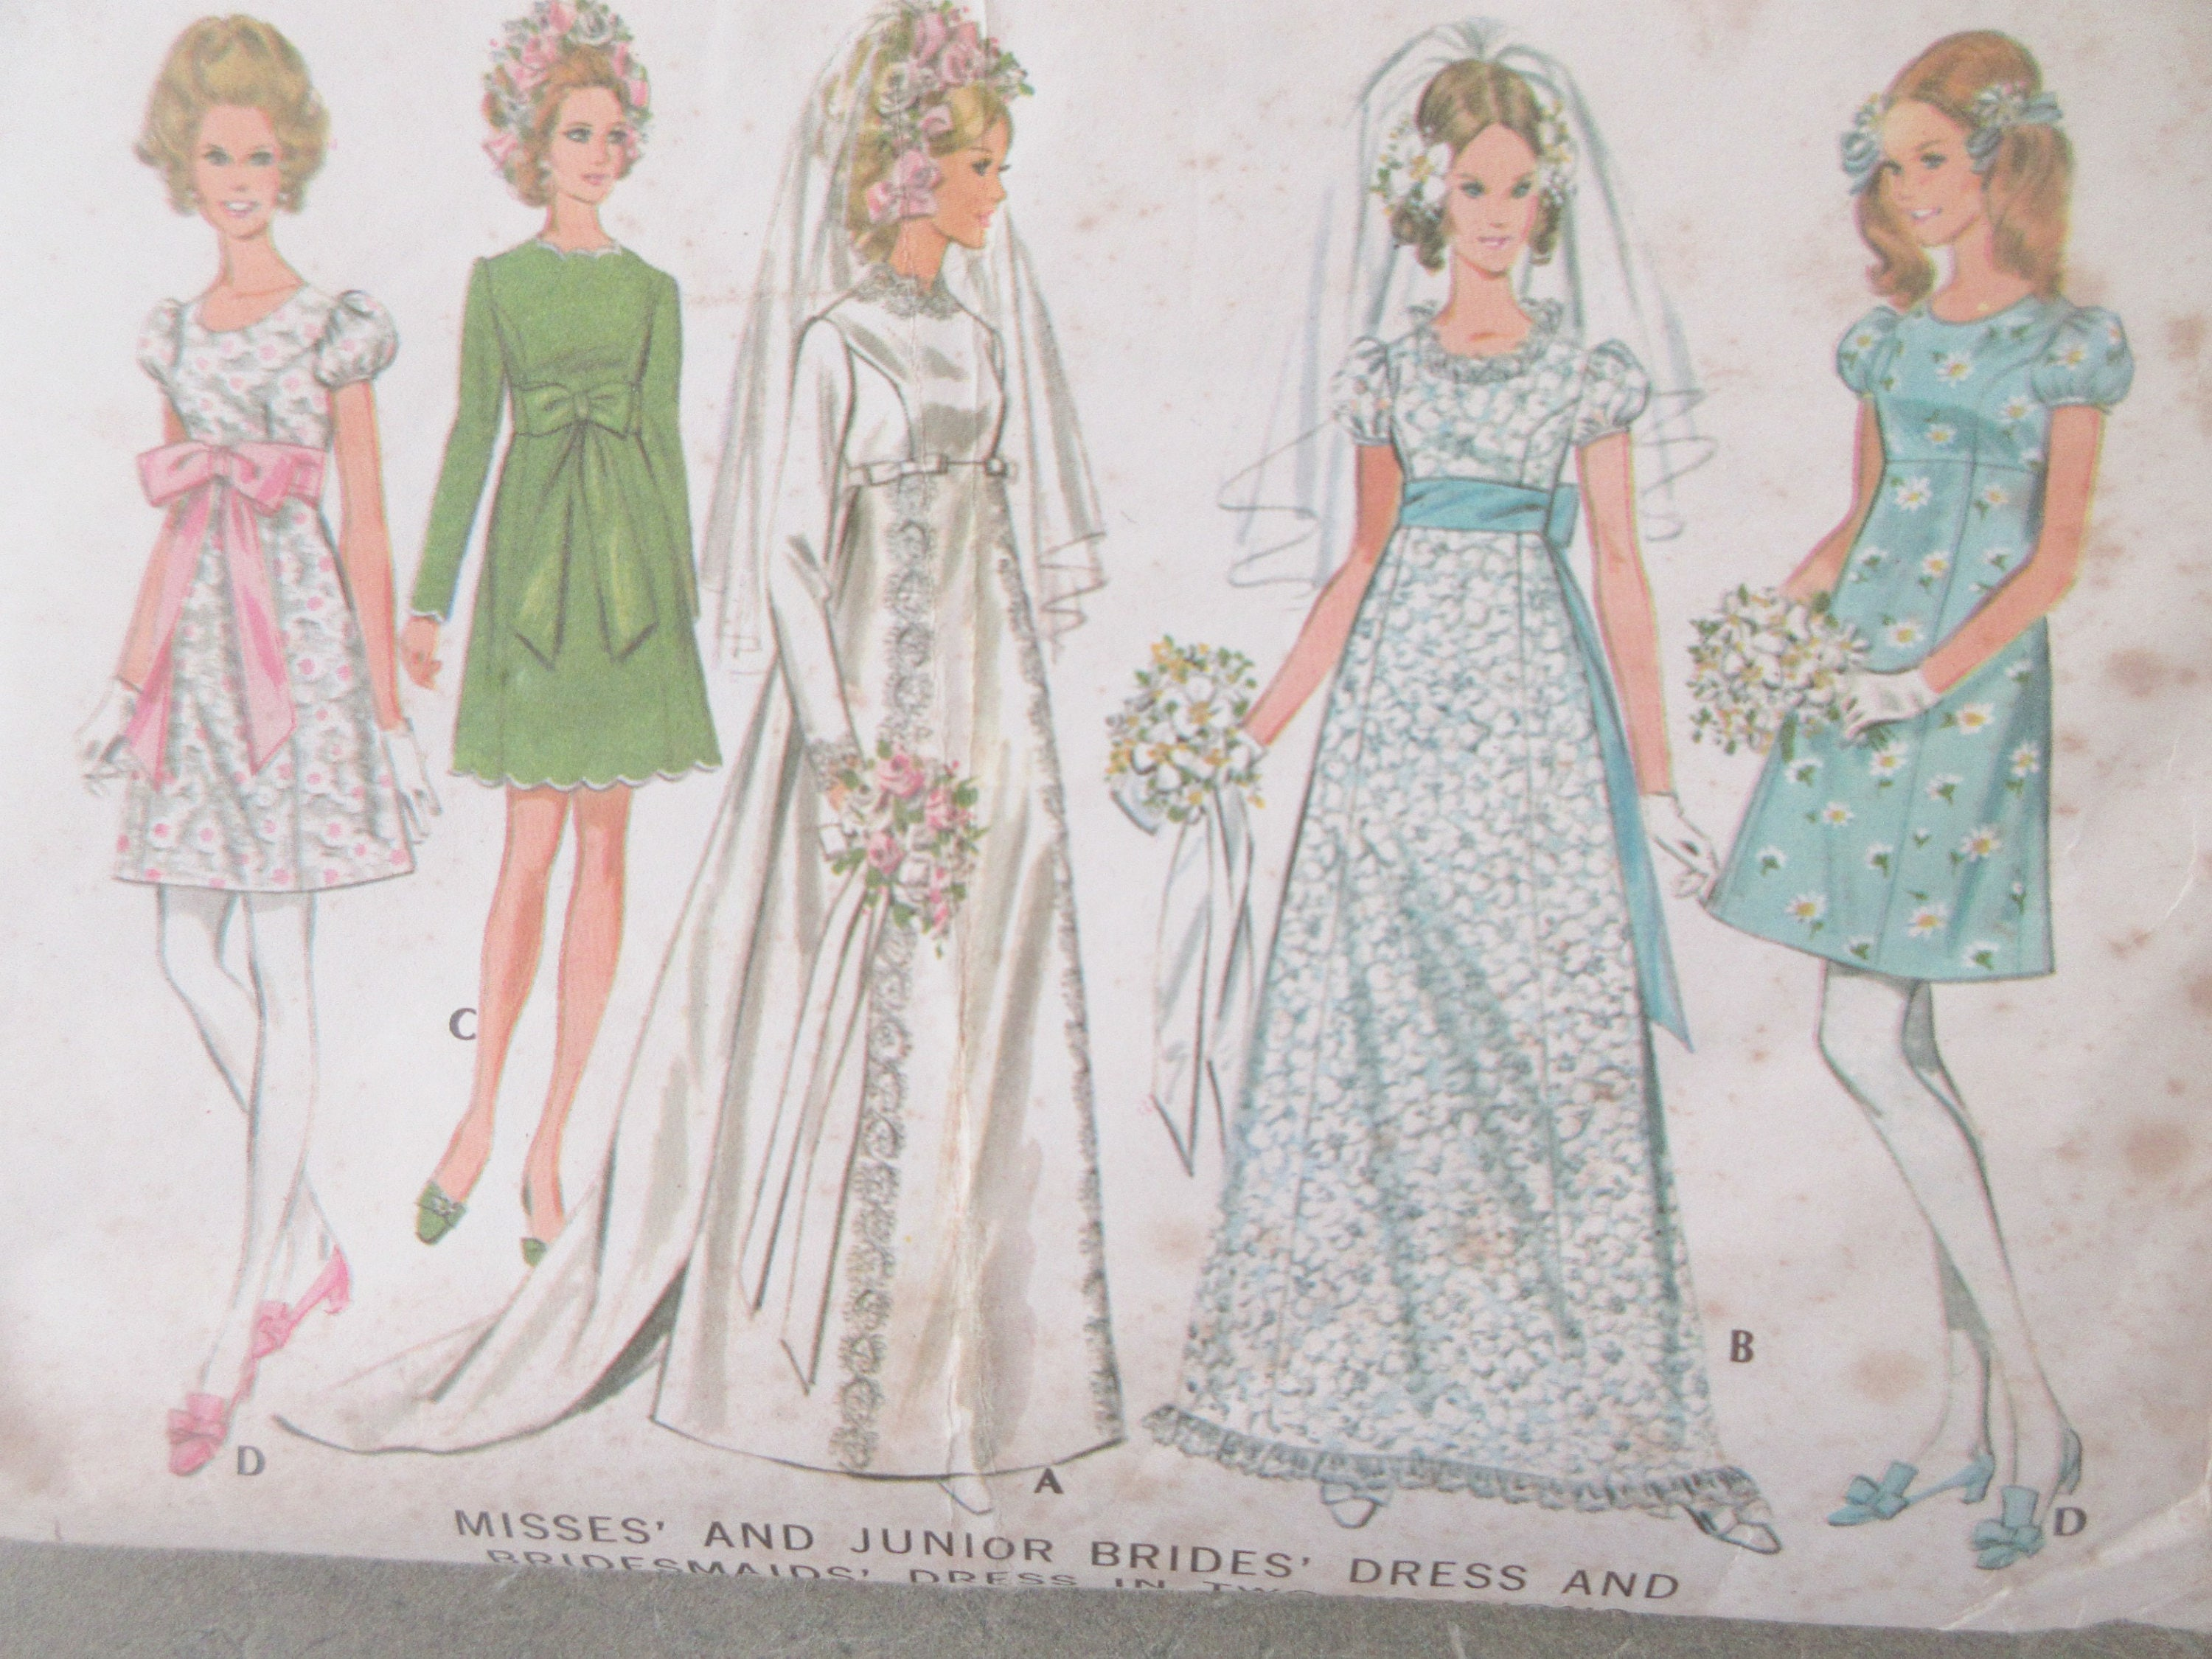 Vintage mccalls 9652 sewing pattern 1960s wedding dress pattern sold by sewbettyanddot ombrellifo Image collections